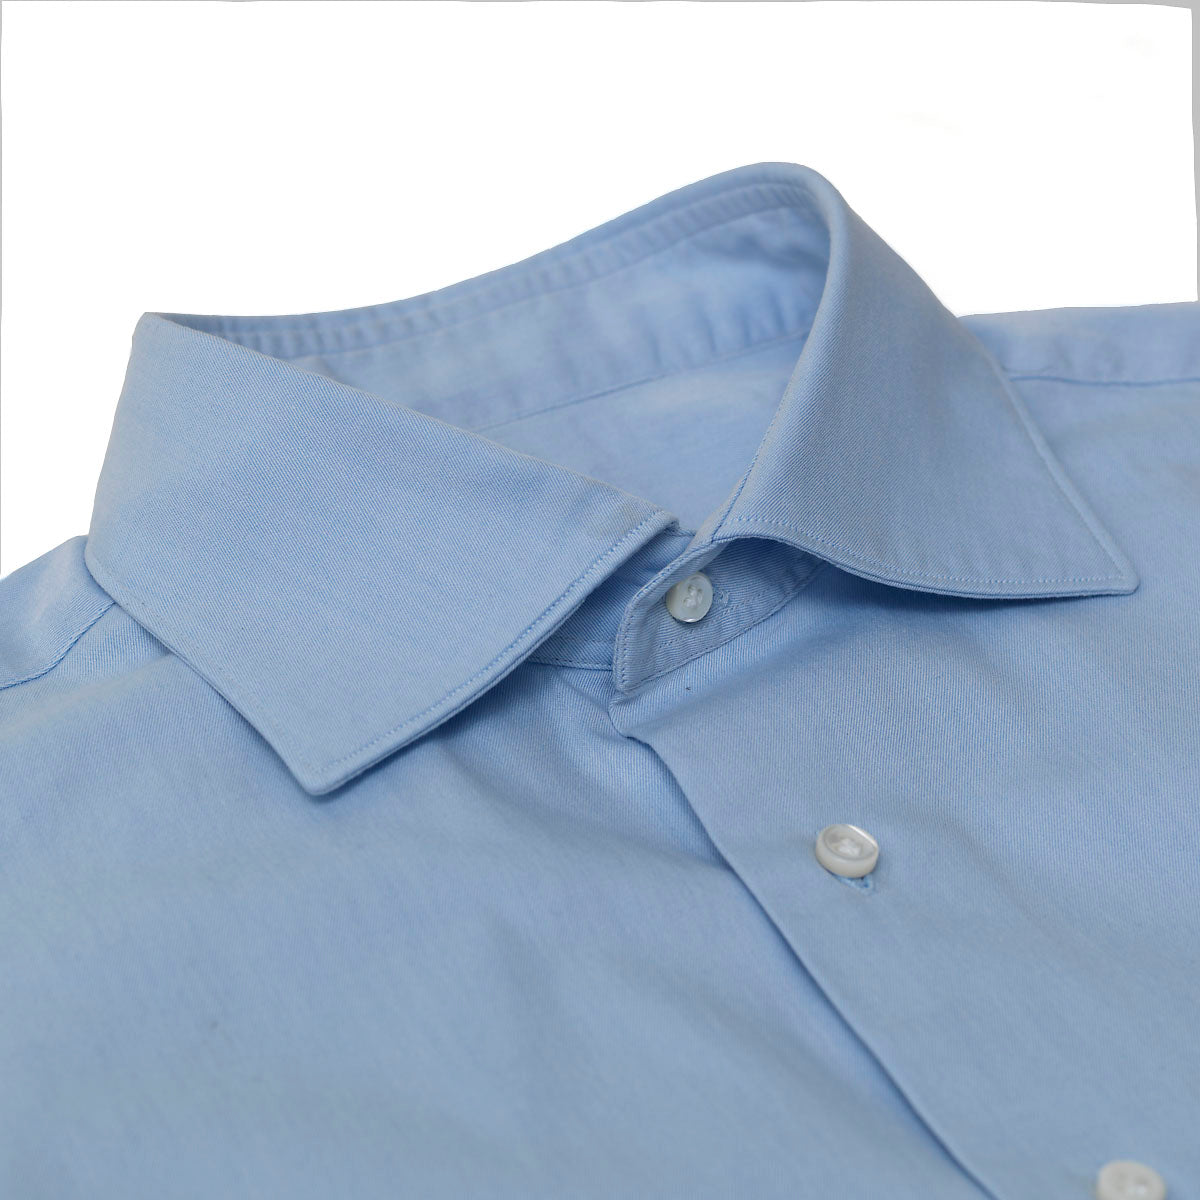 Light blue lightweight oxford shirt